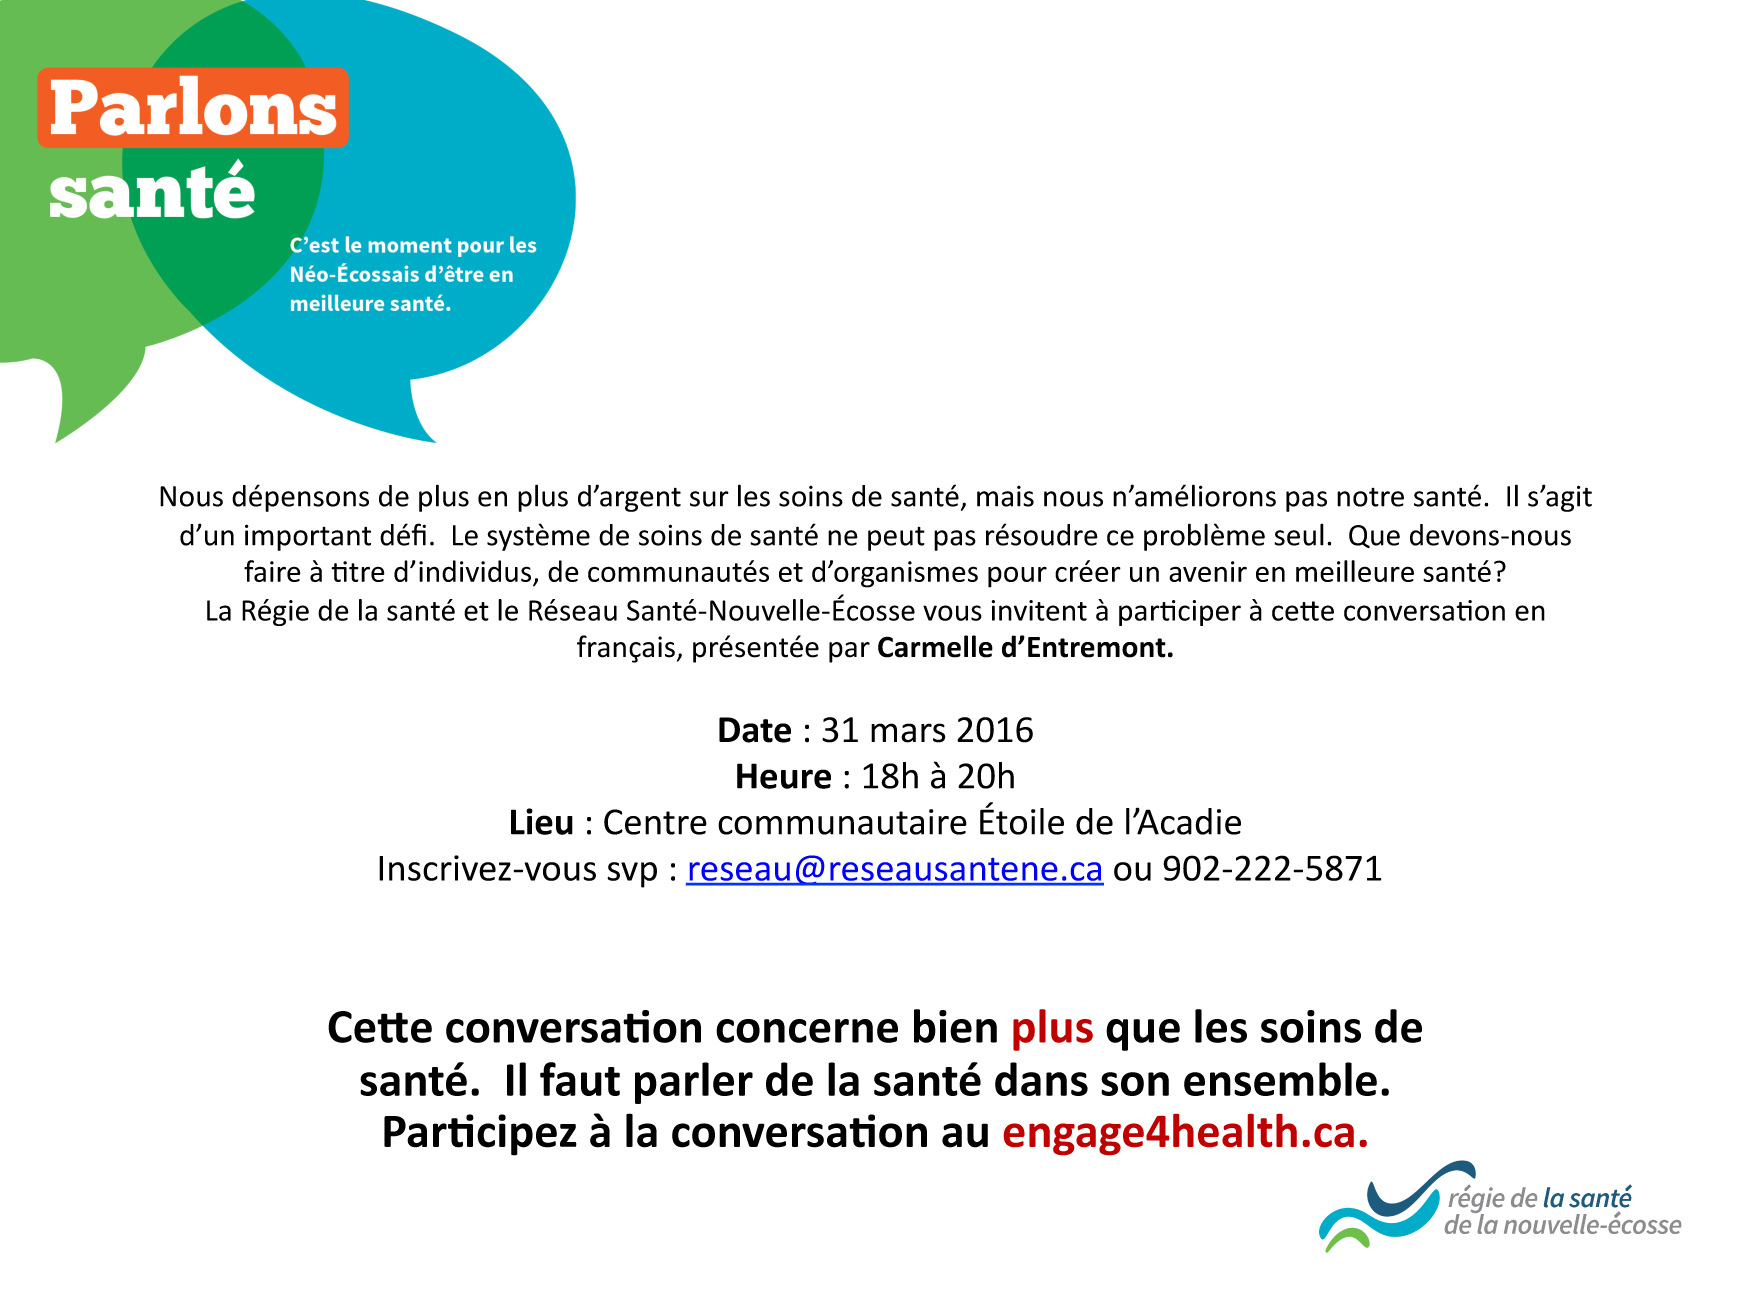 LetsTalkPowerPoint_FRENCH Invitation(1).pptx